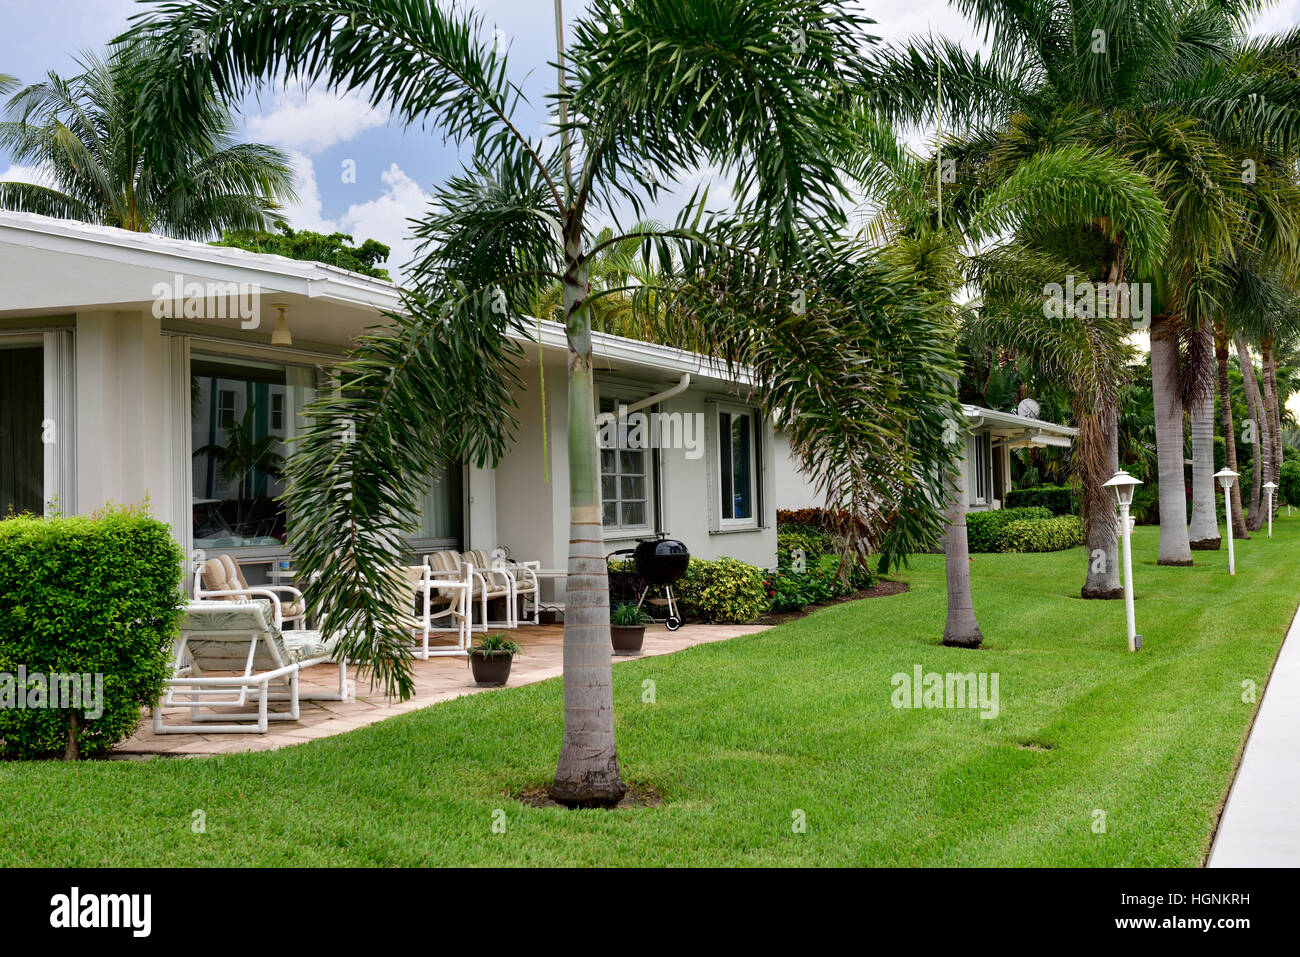 Coop residential housing Pompano Beach, Florida - Stock Image